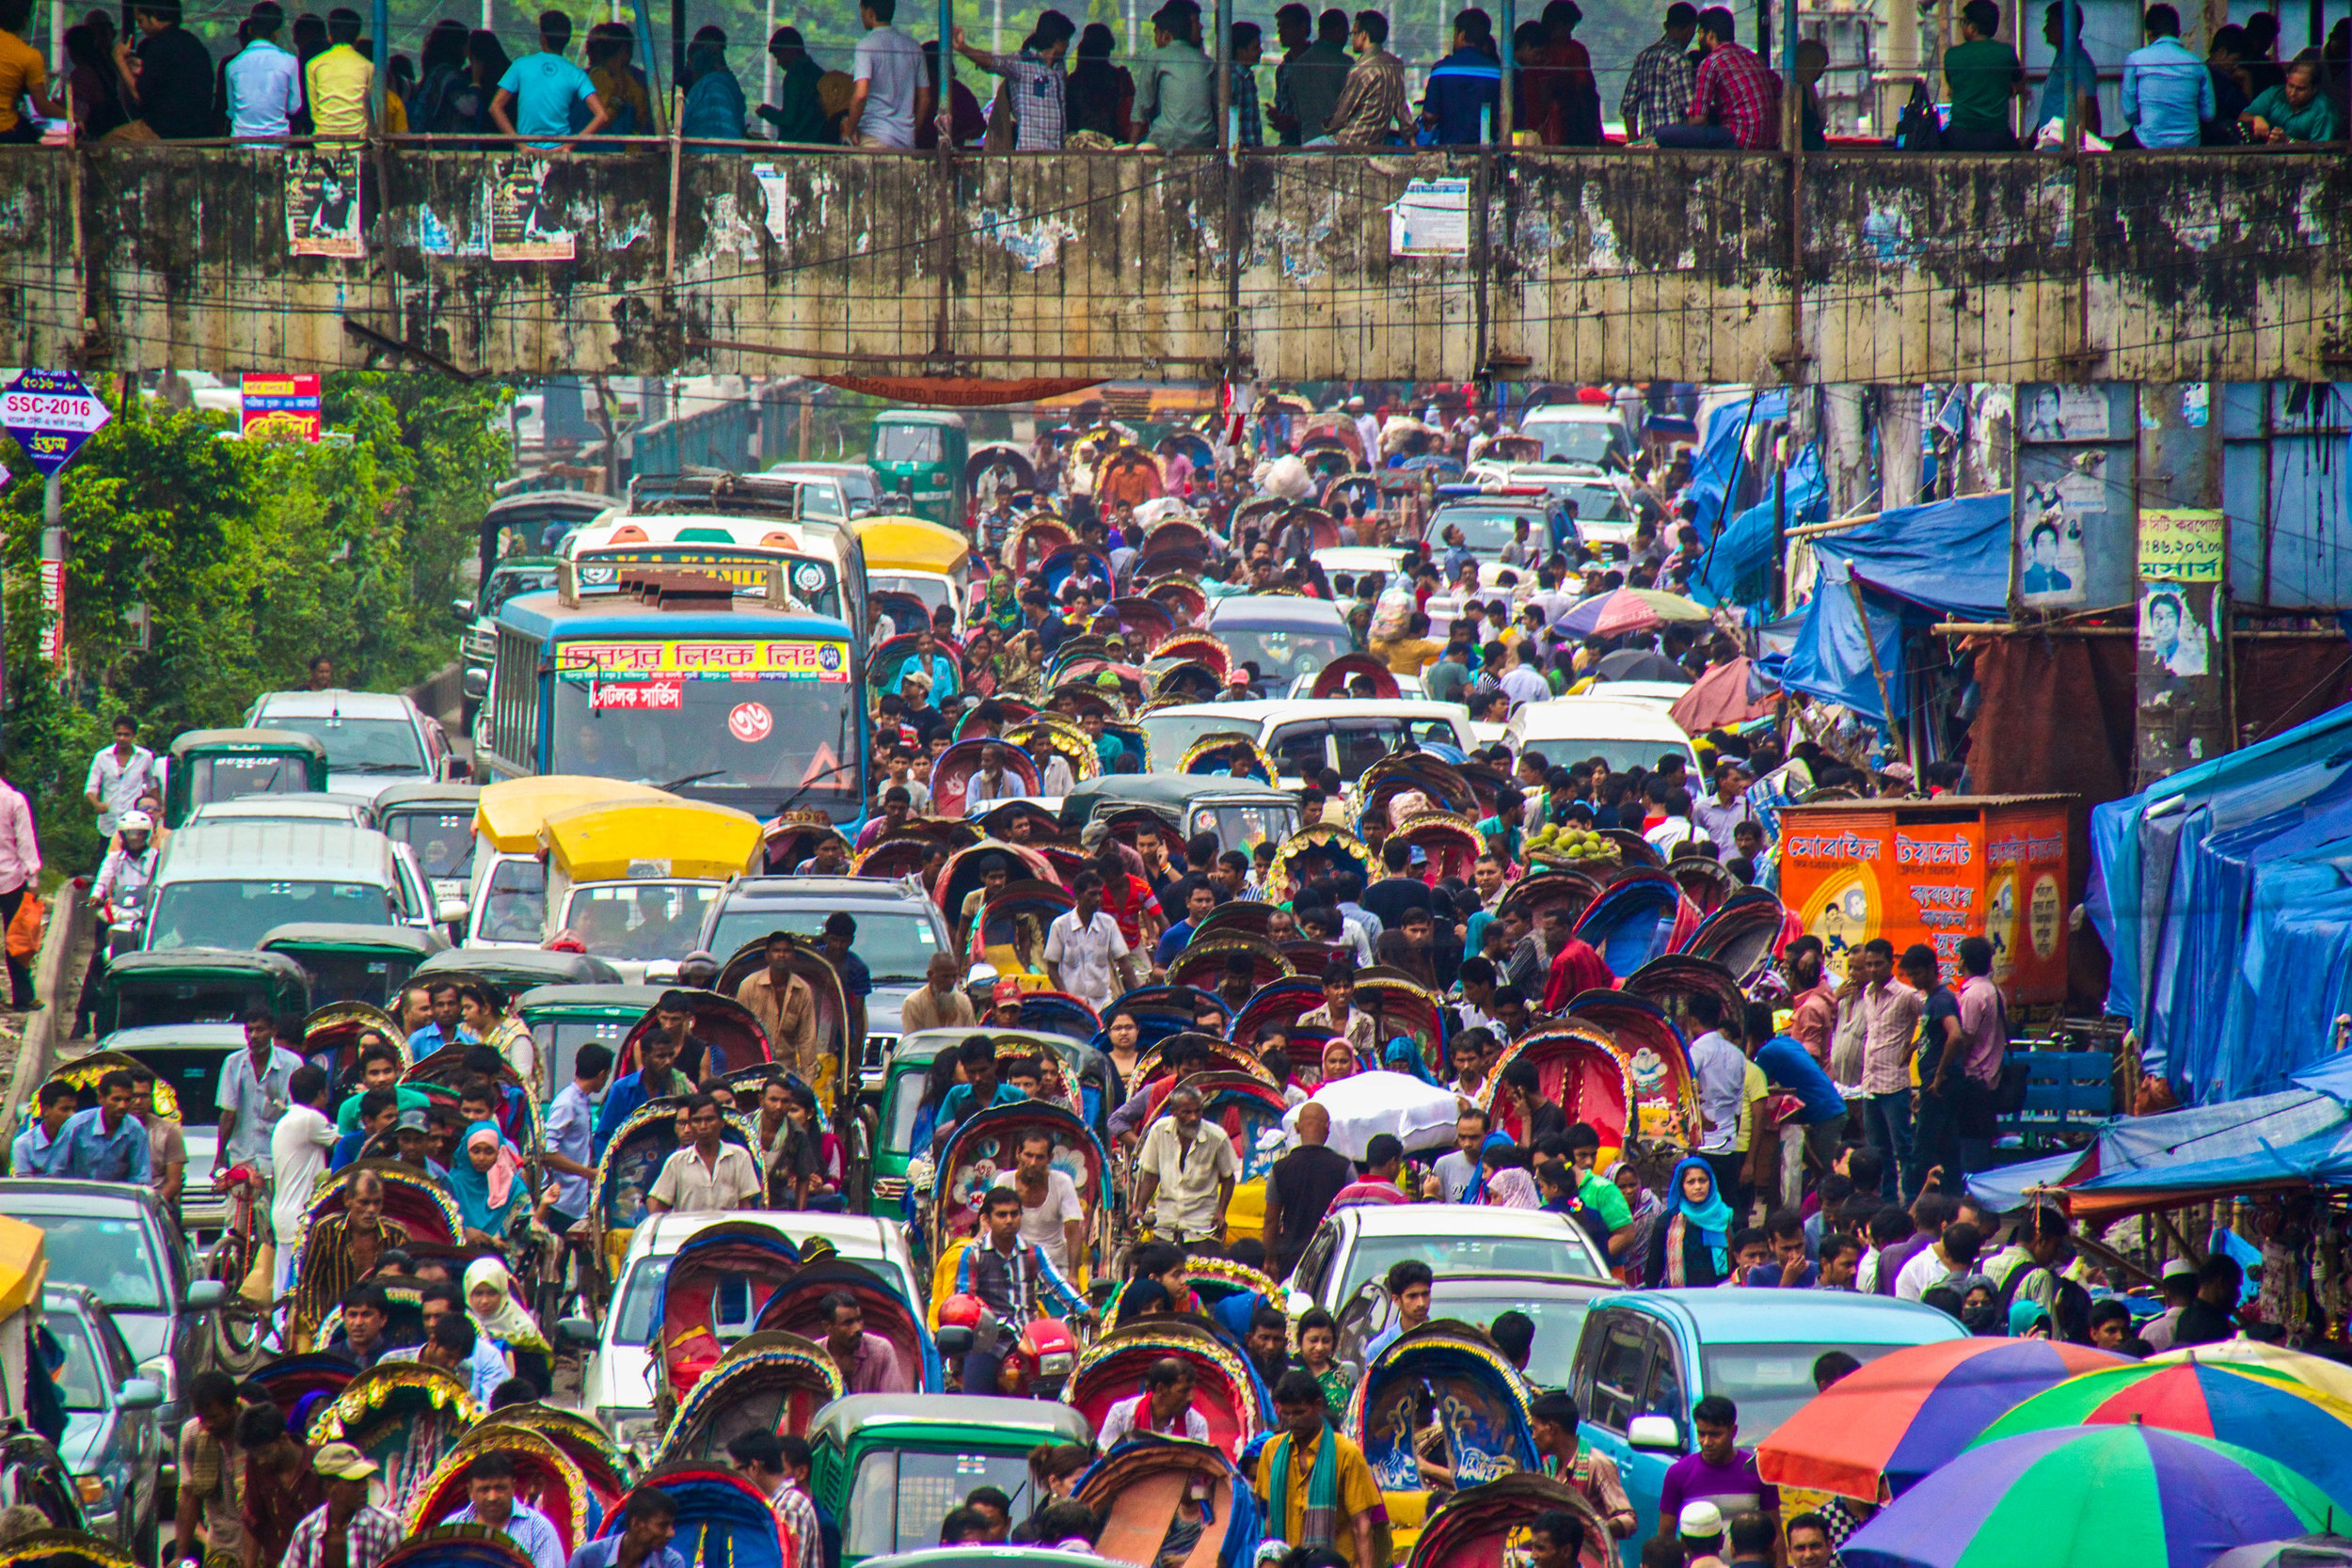 dhaka bangladesh new market traffic-2.jpg